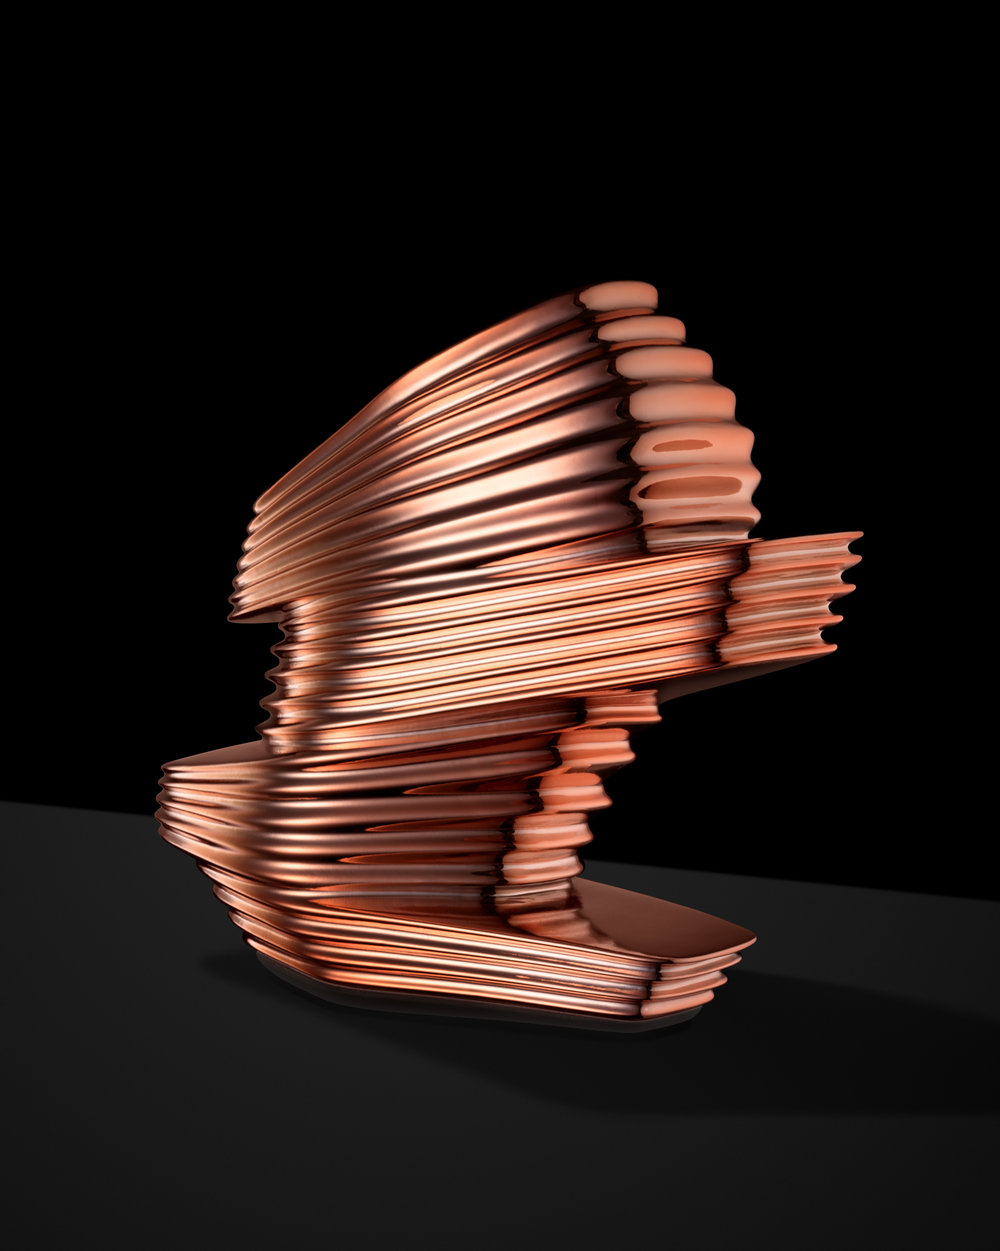 zaha-hadid-copper-shoes-fashion-united-product-photographer-advertising-photography-stan-musilek